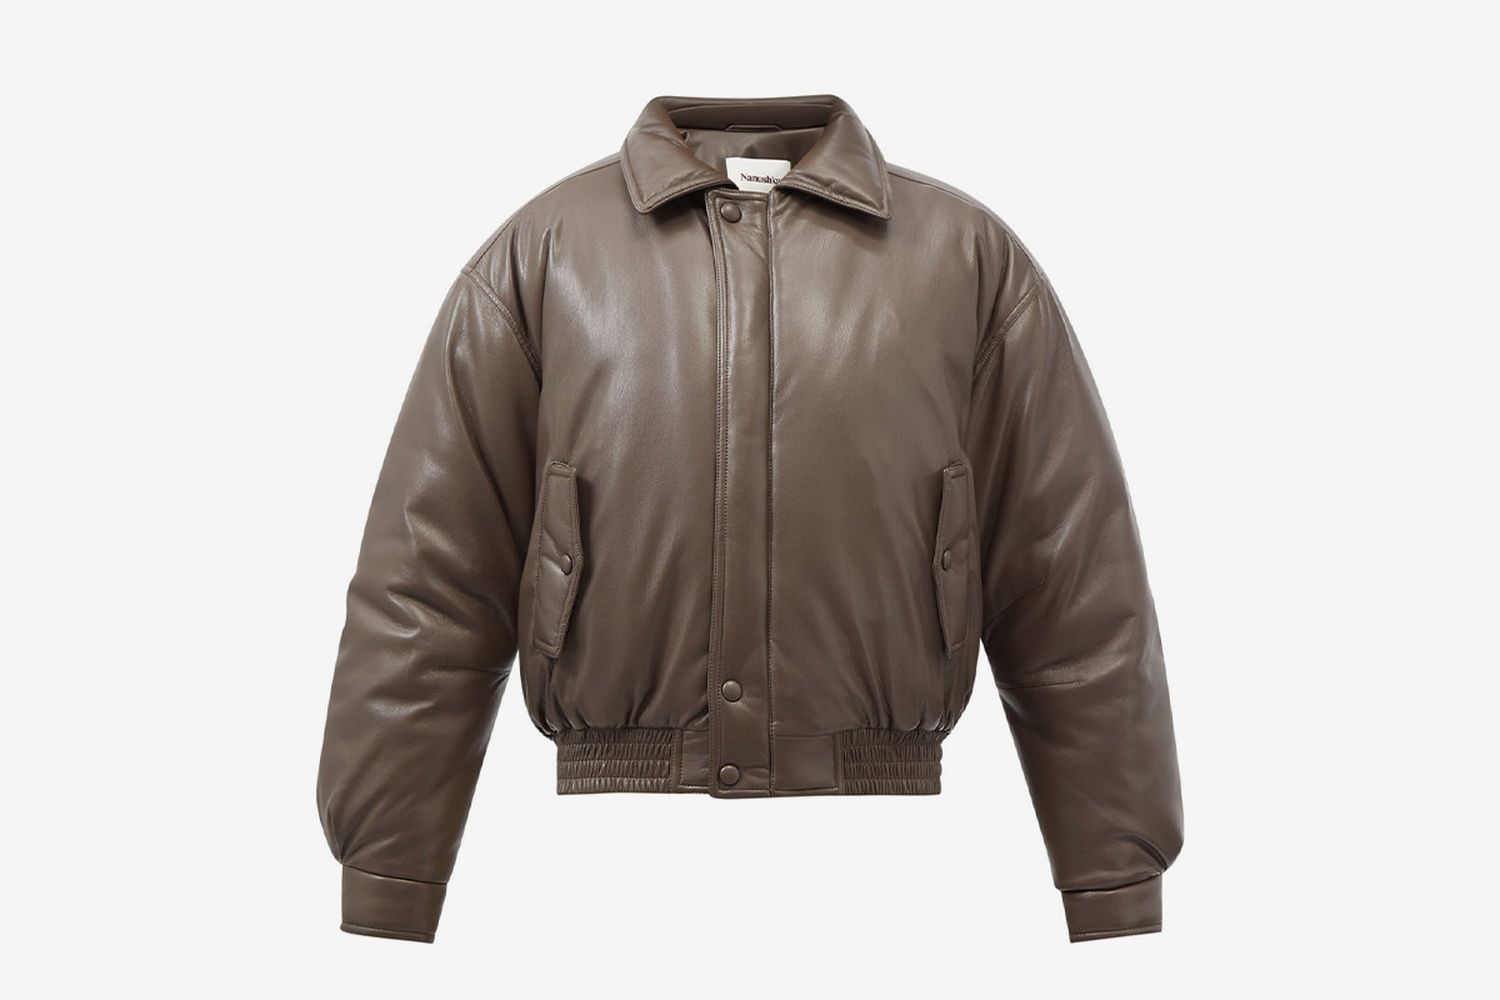 Ands Jacket